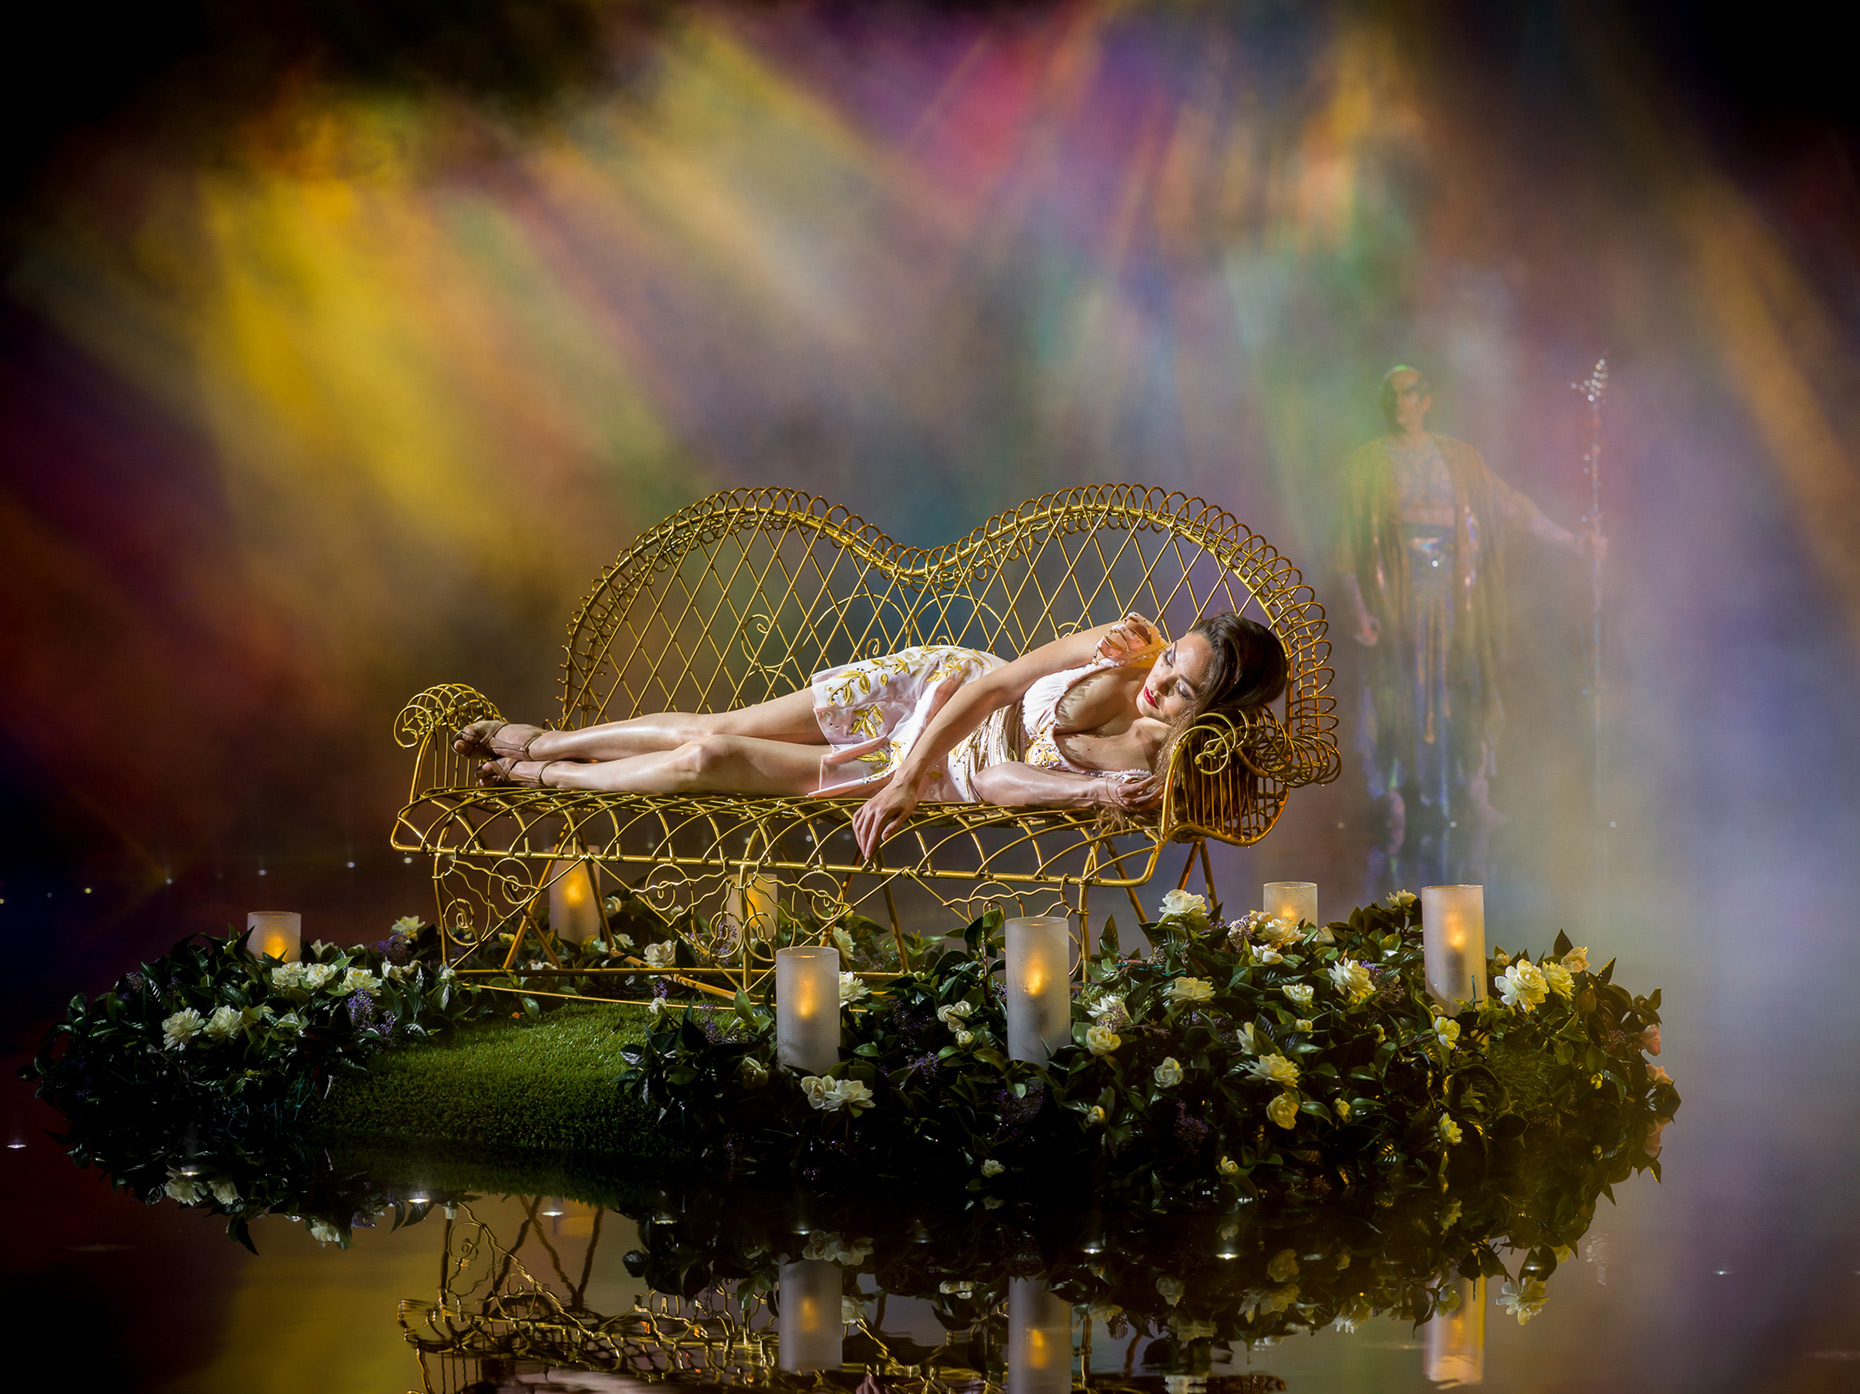 The dreamer on her bench Le RÊVE the Dream show At the Wynn Las Vegas Advertising